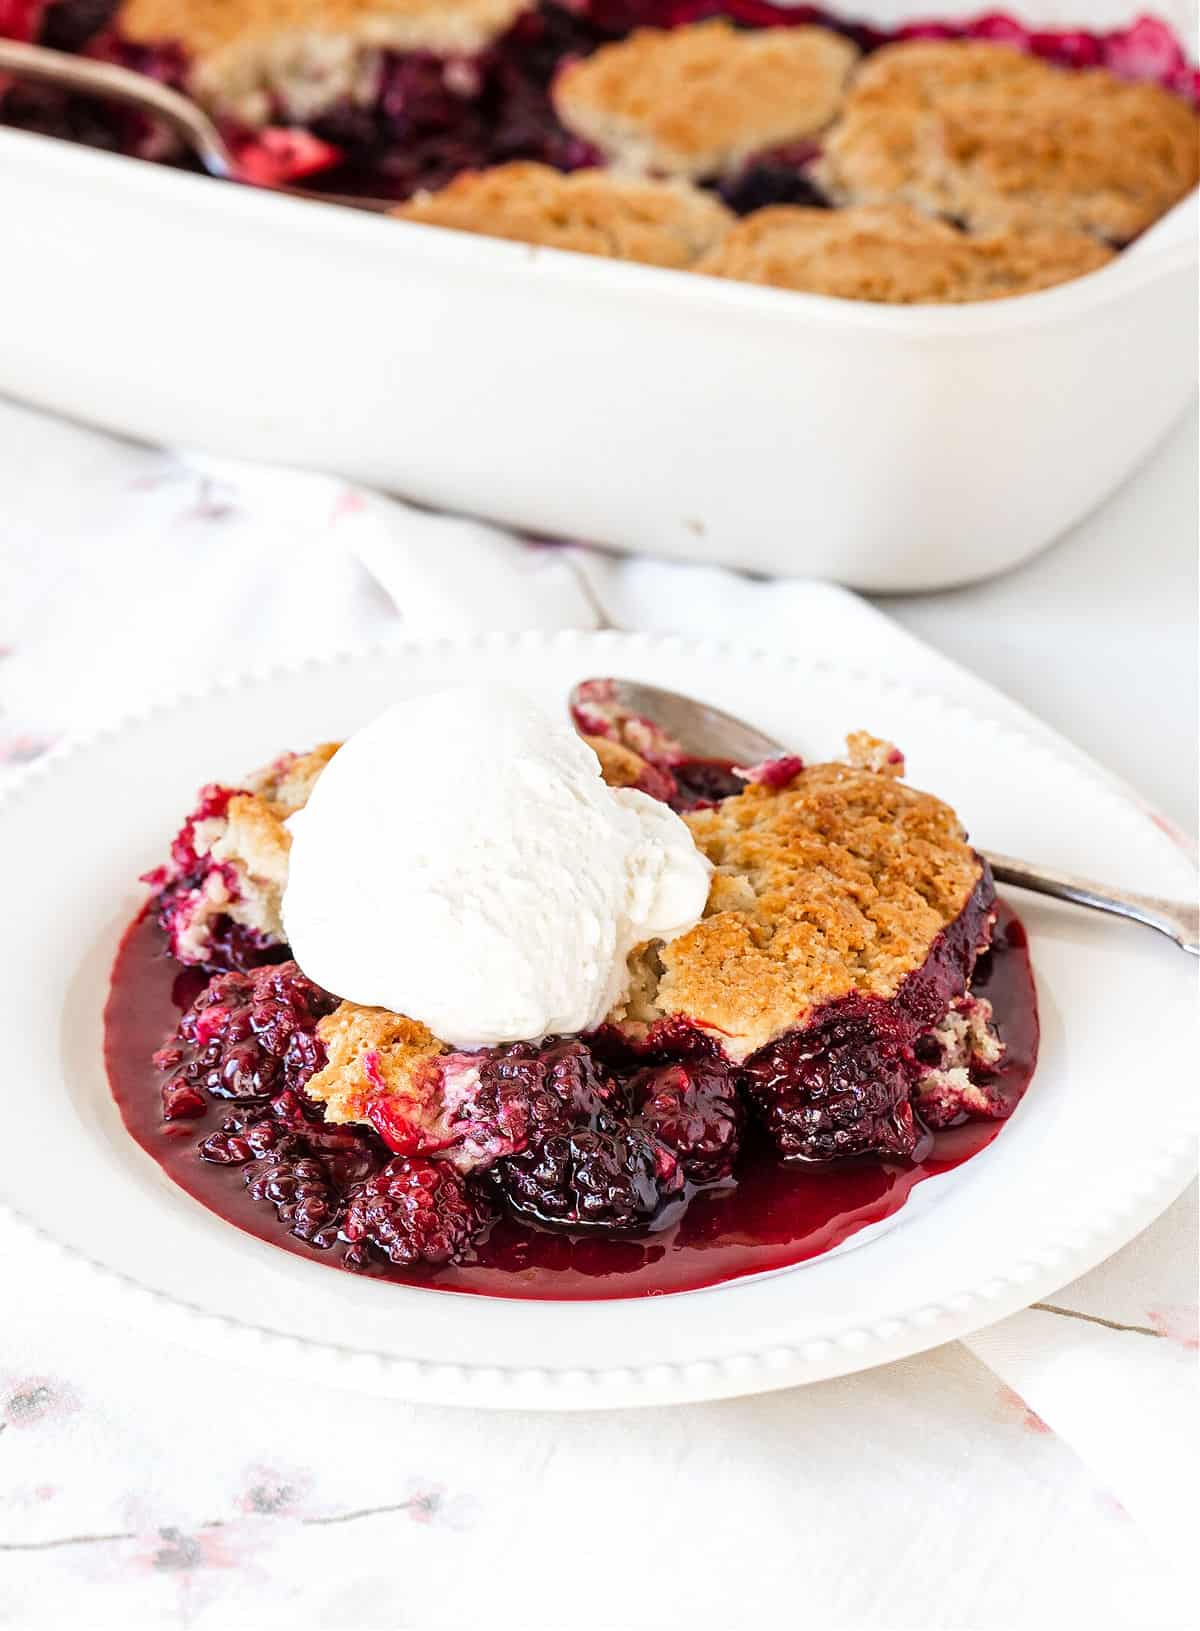 A serving of blackberry cobbler with ice cream on white plate and background